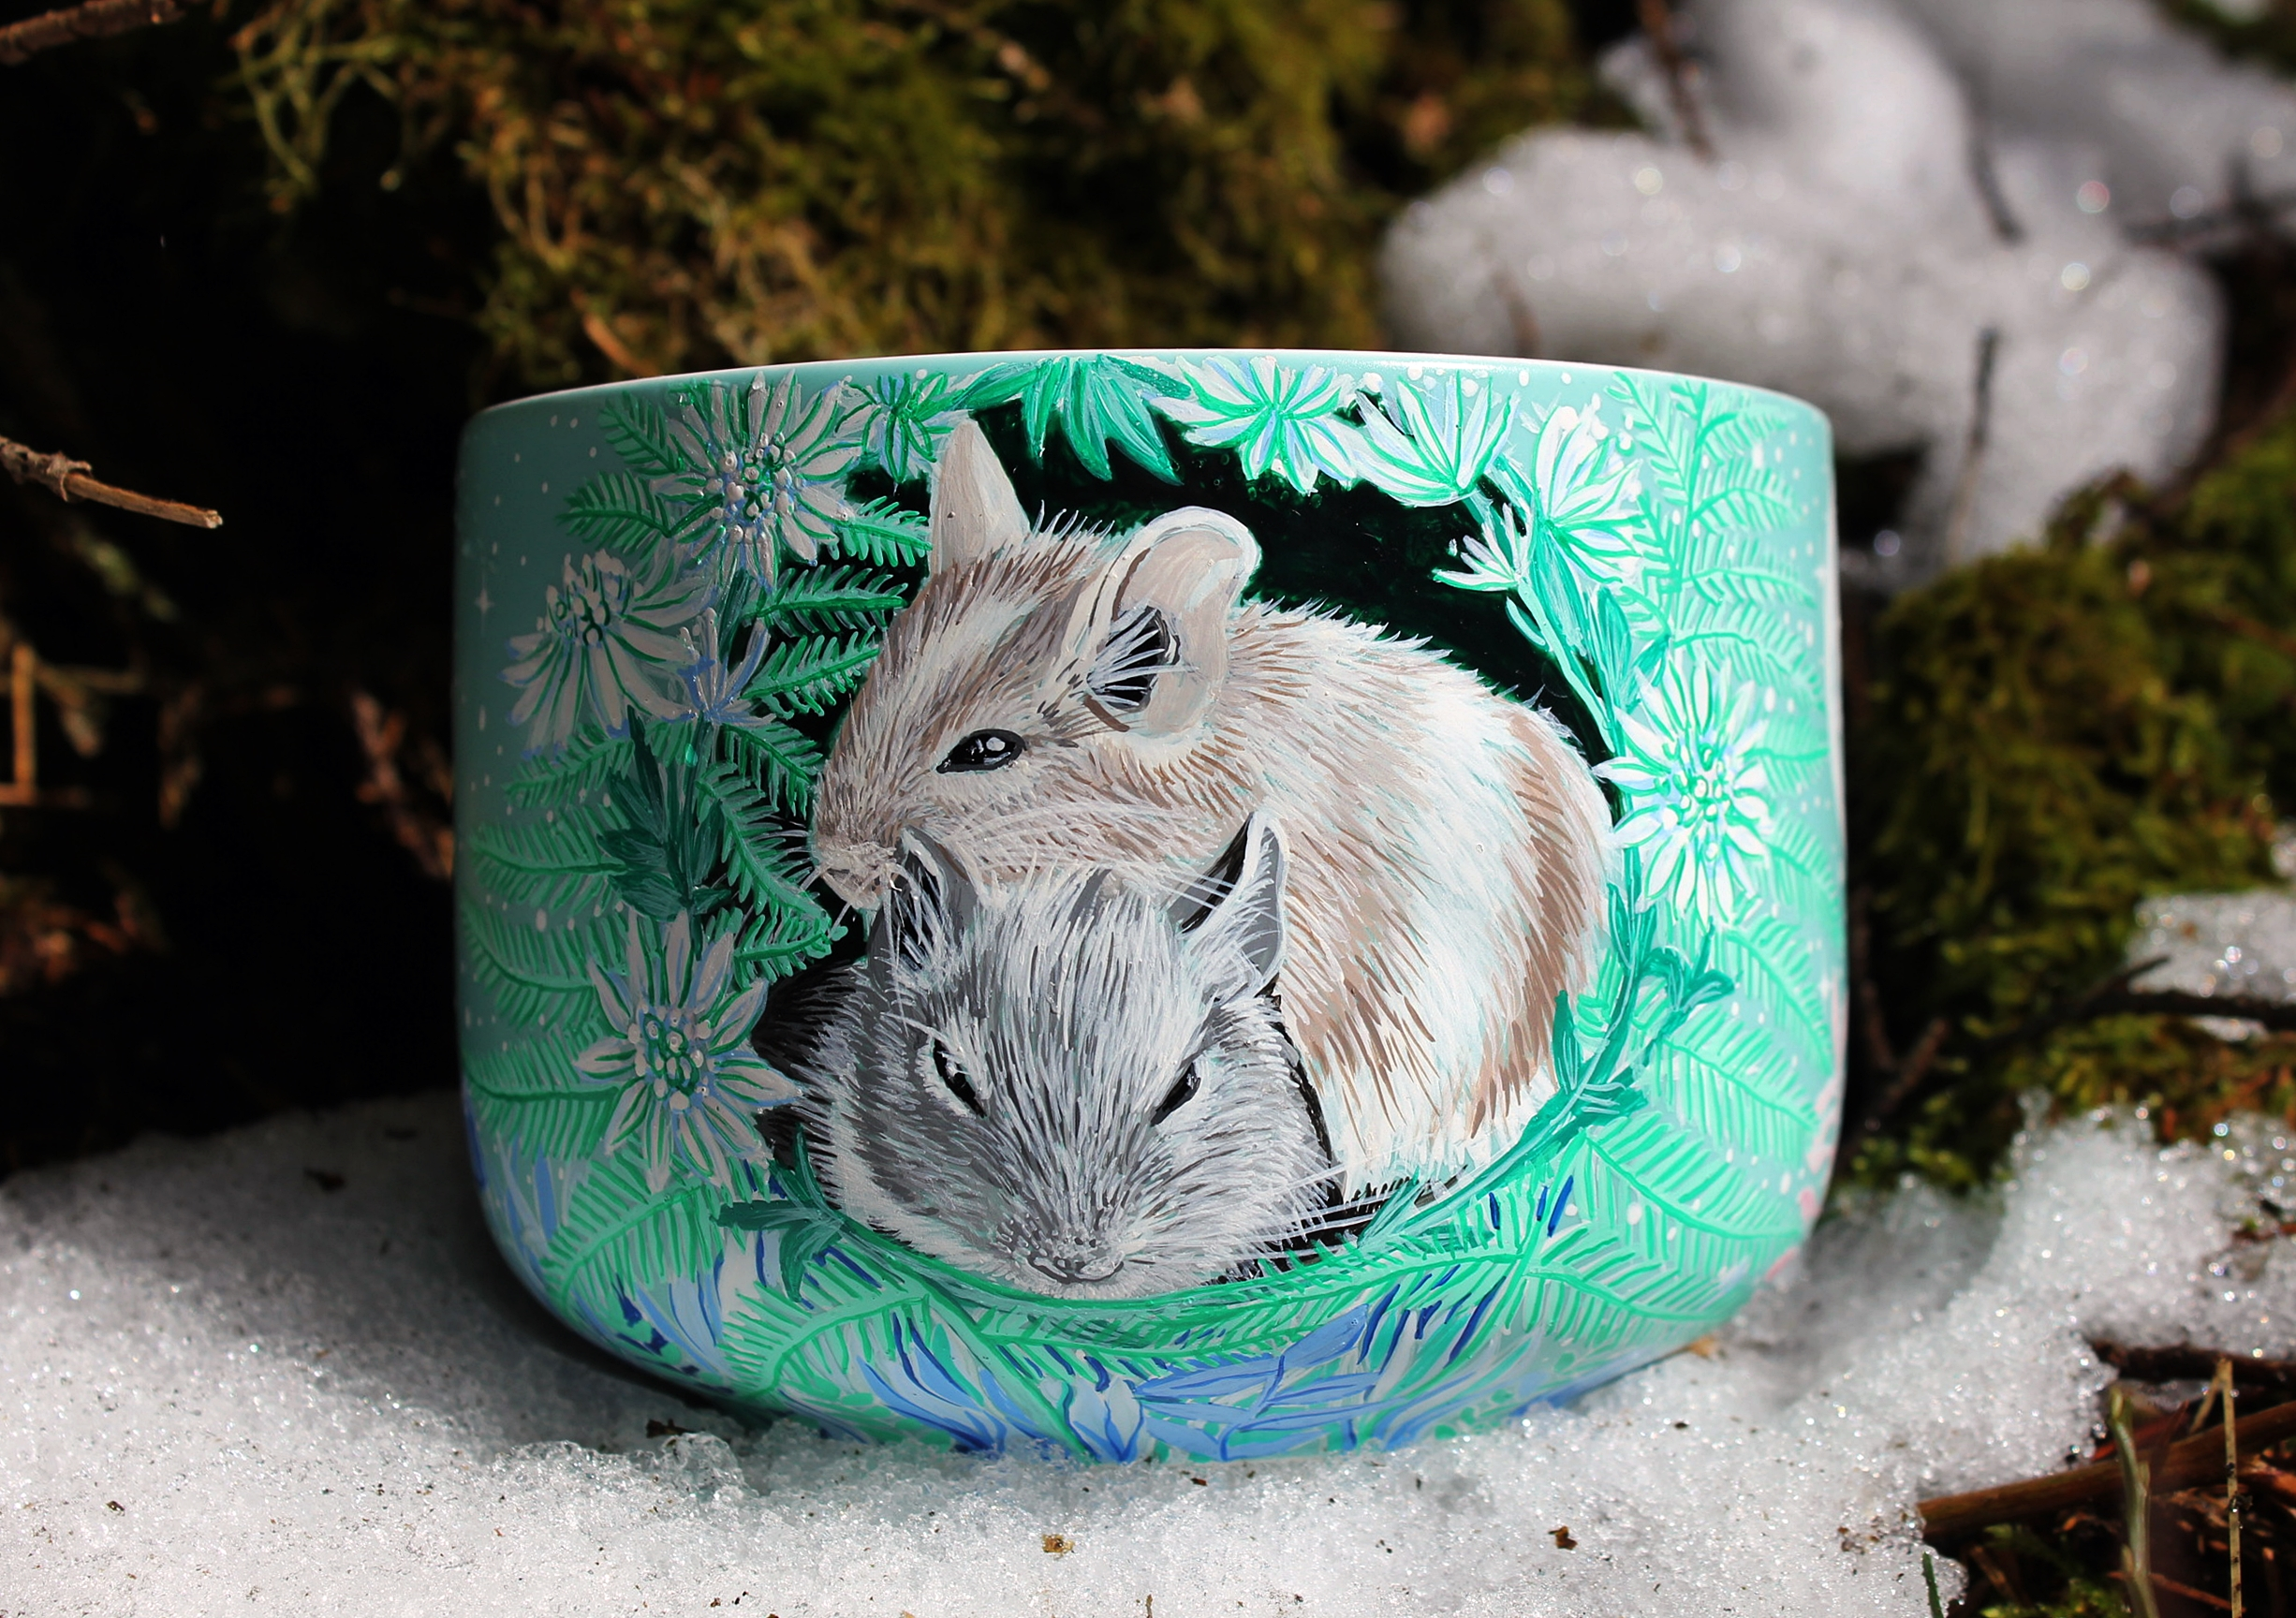 Degu nature hand painted illustration handmade watercolor cup mug coffee tea gift animal lover forest trees meadow flowers moon mug stars etsy store 5